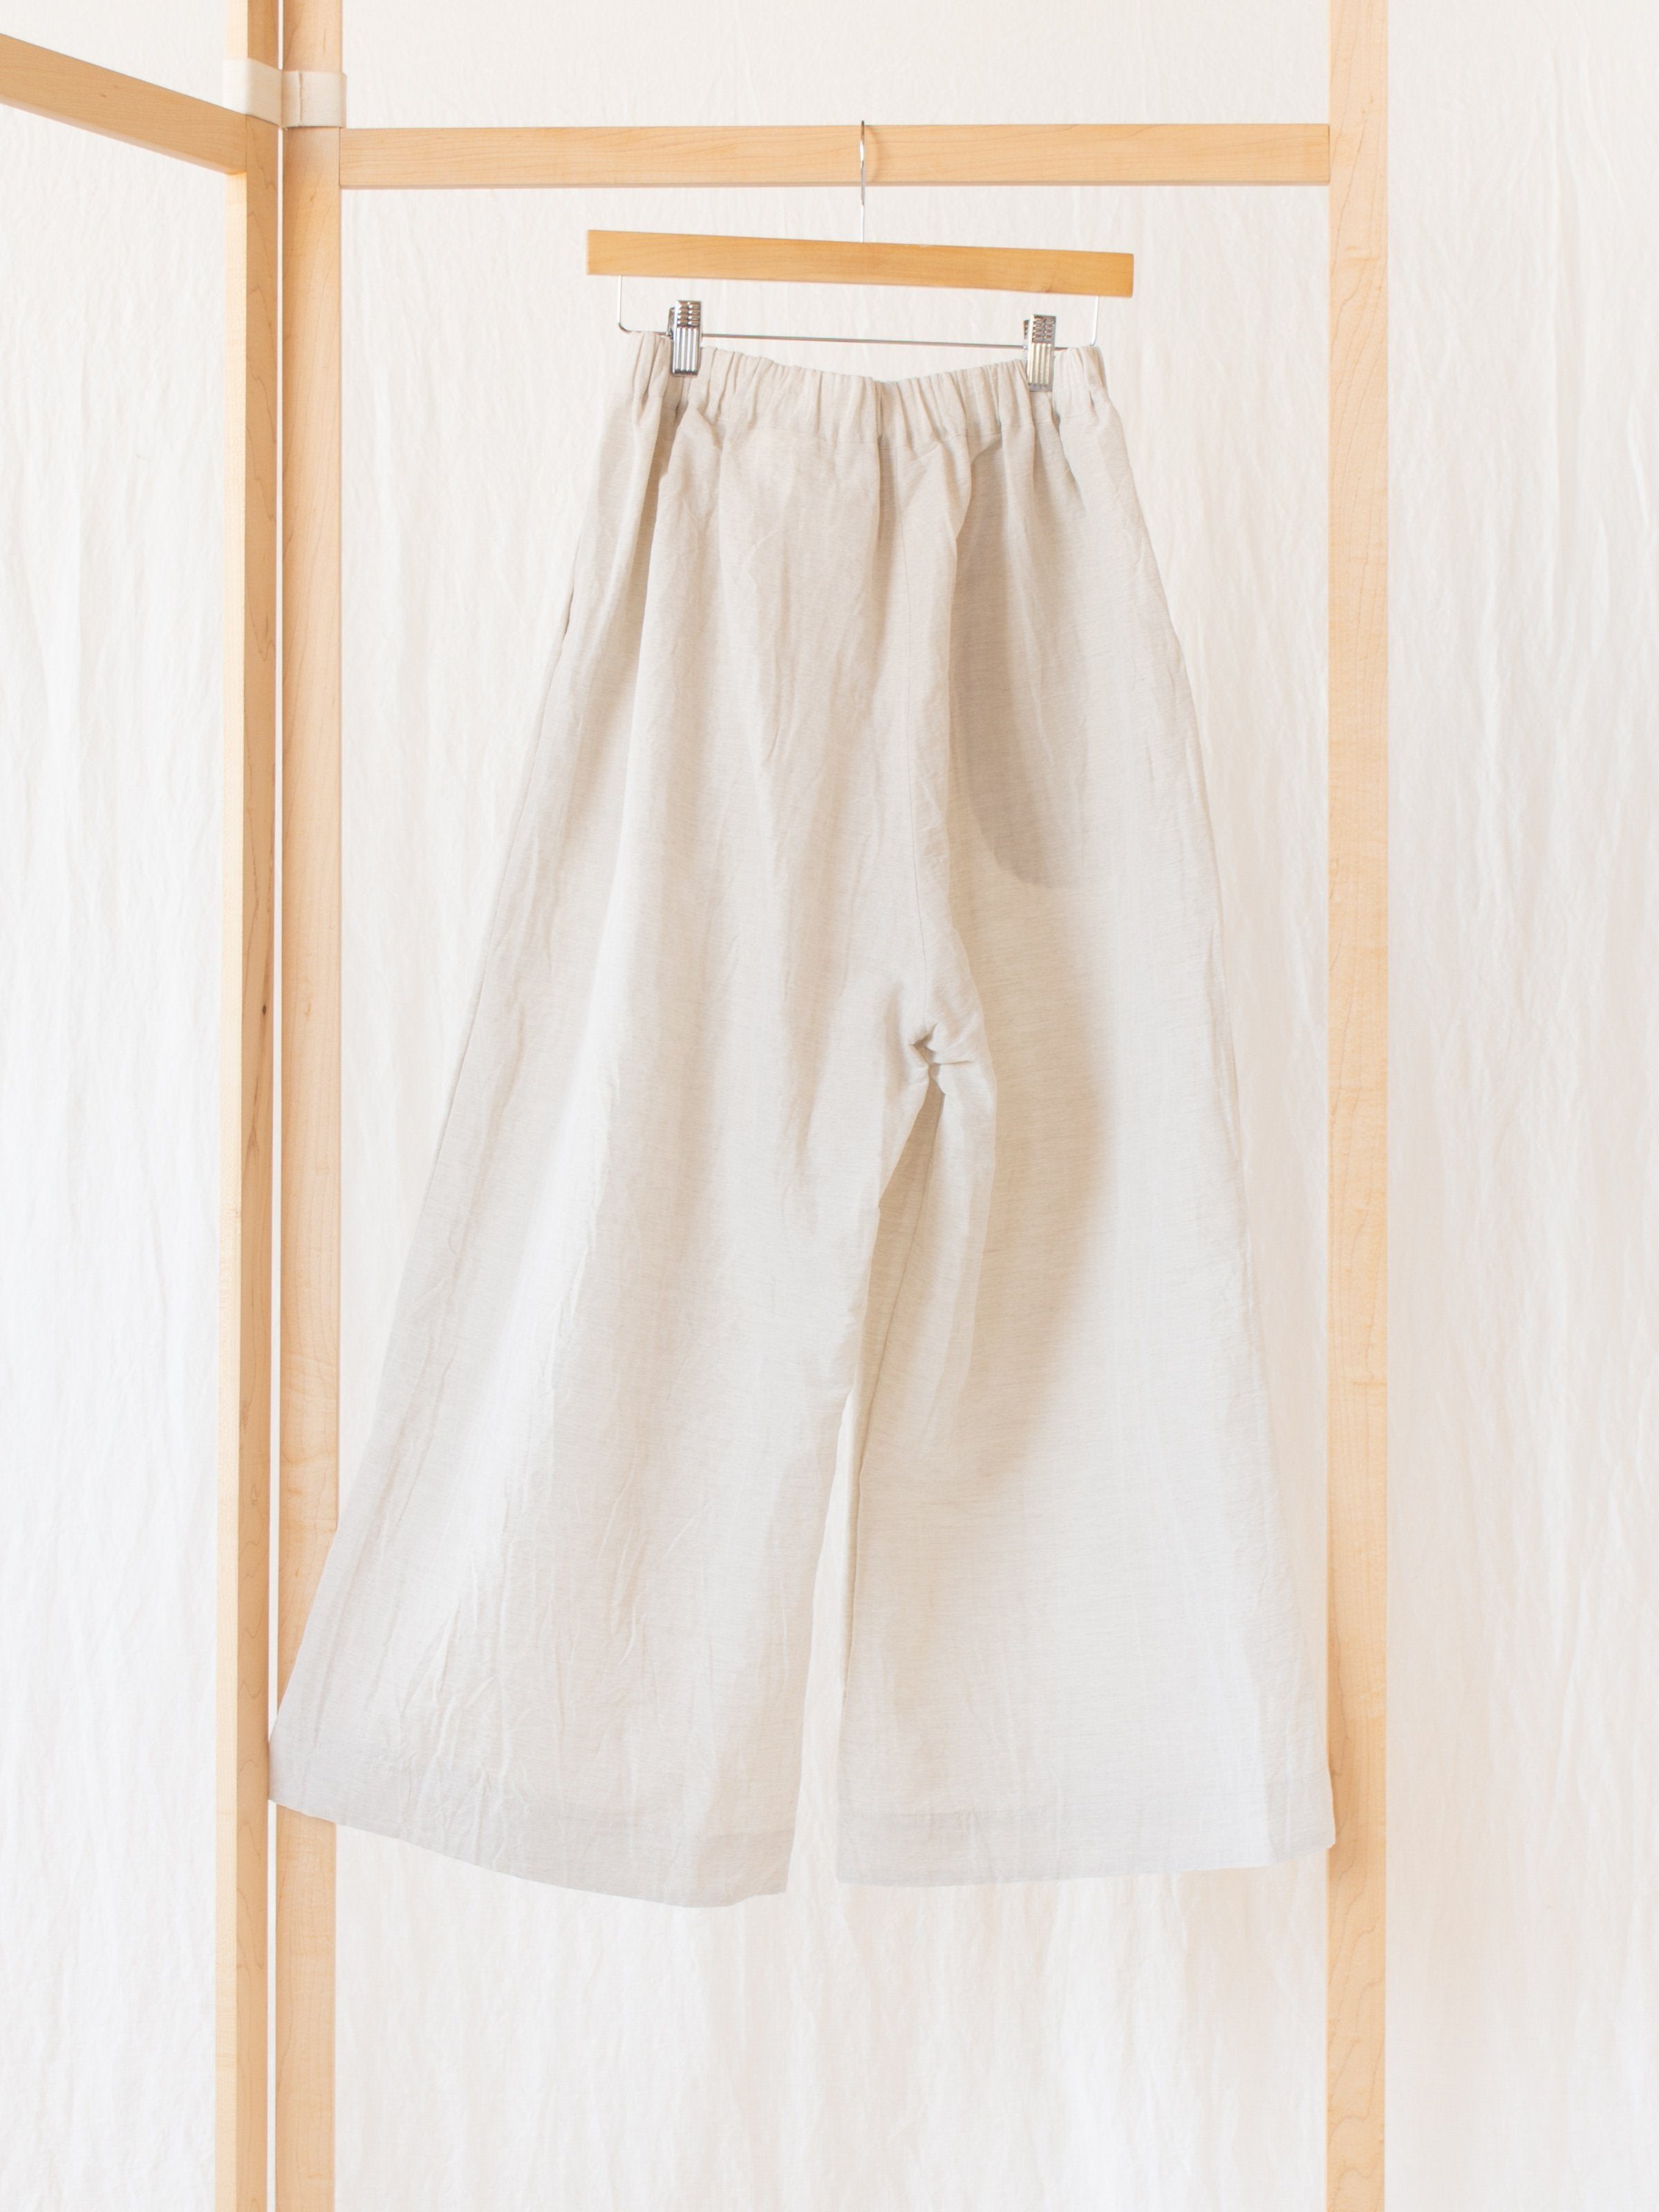 Namu Shop - Veritecoeur Sun-Dried Li / Co Wide Leg Pant